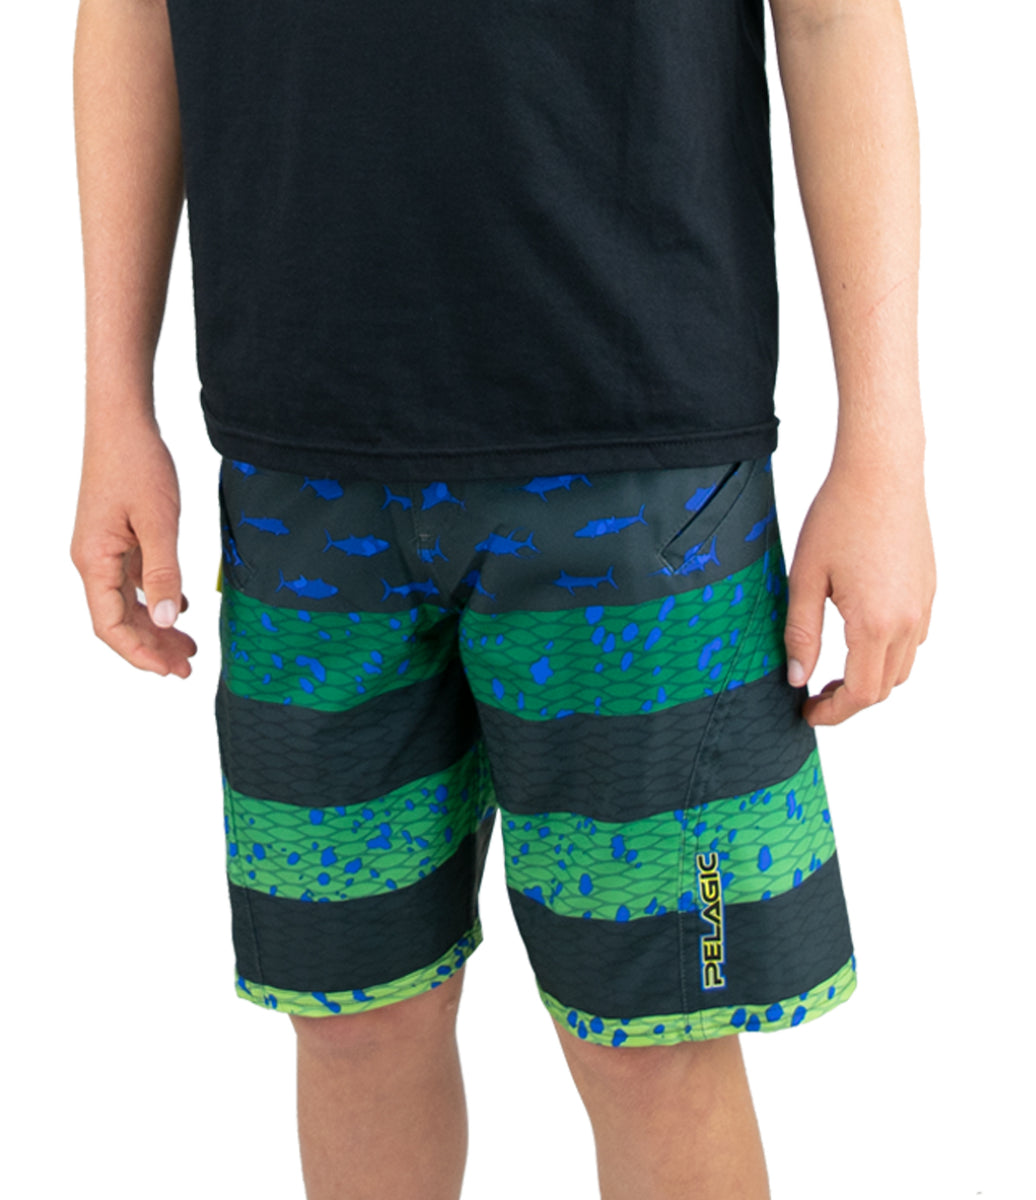 Sharkskin Americamo Fishing Boardshort - Youth Big Image - 4